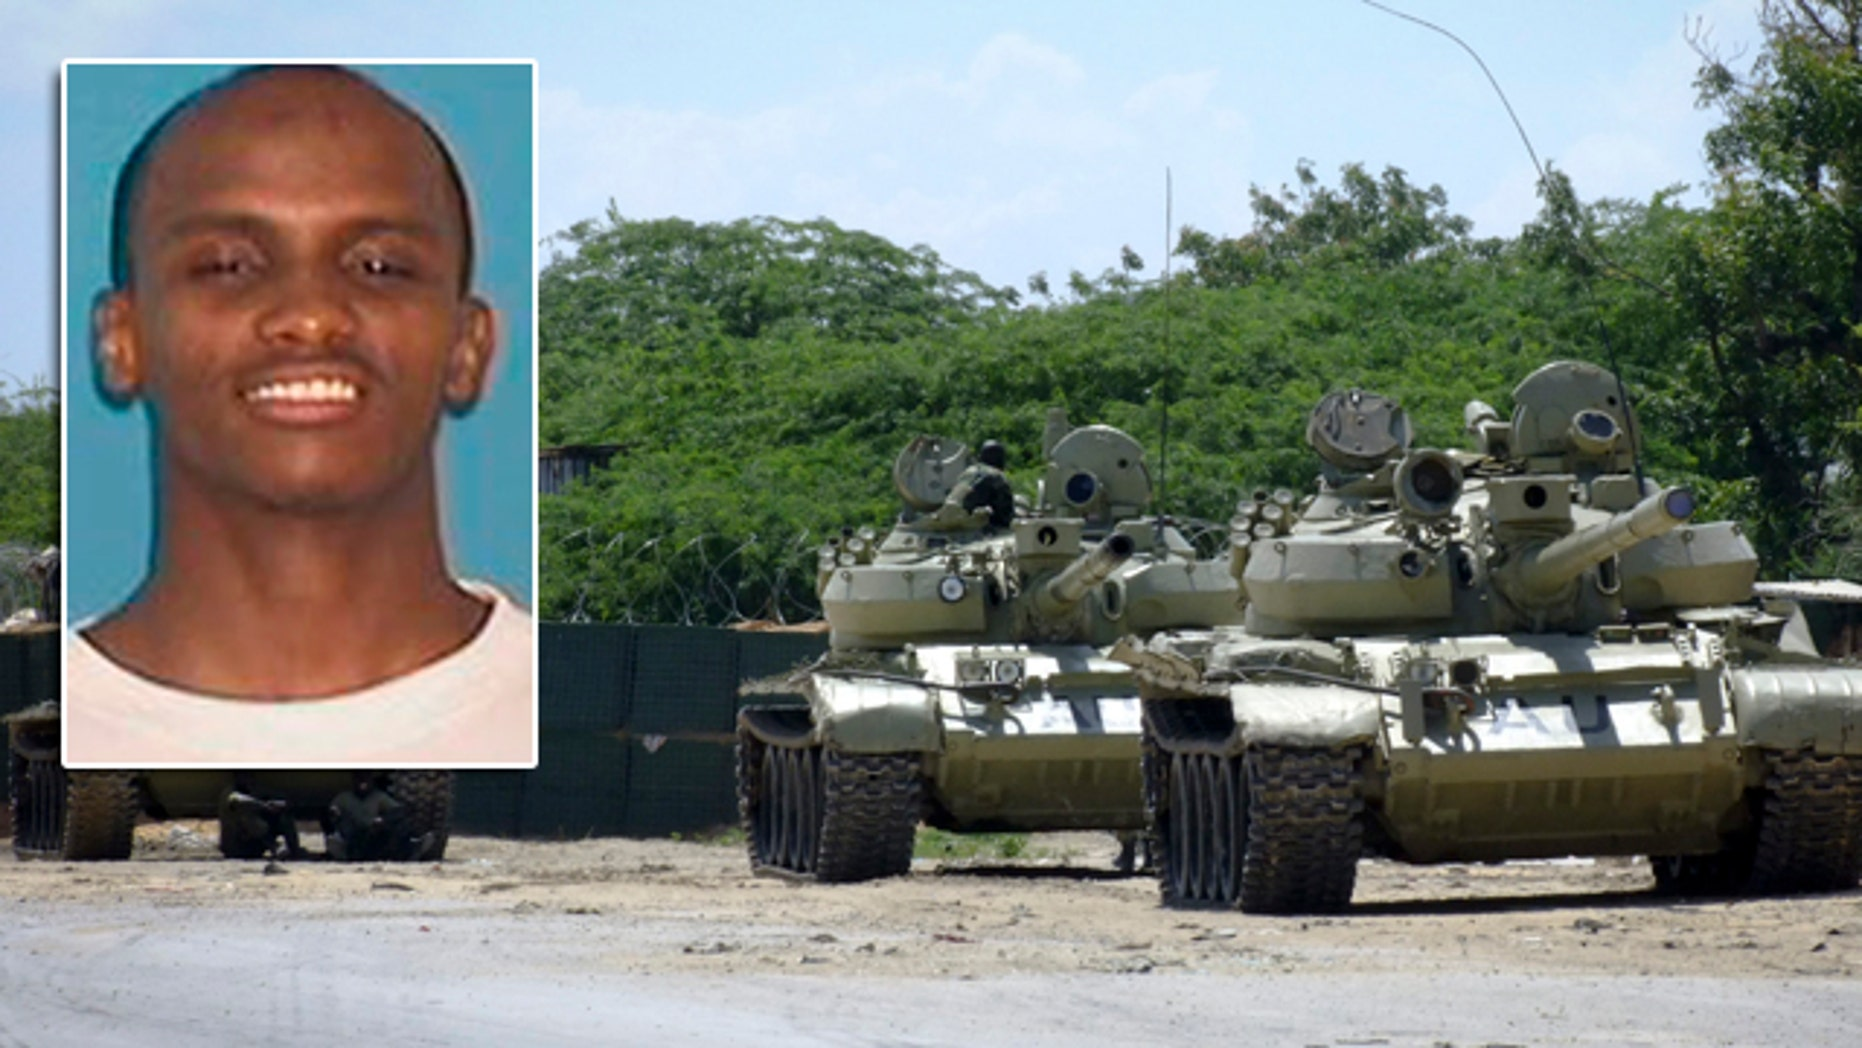 Abdisalan Hussein Ali was 19 when he disappeared from Minnesota in November 2008. The FBI is trying to determine if he was the suicide bomber who attacked an African Union base in Somalia on Oct. 29, 2011.